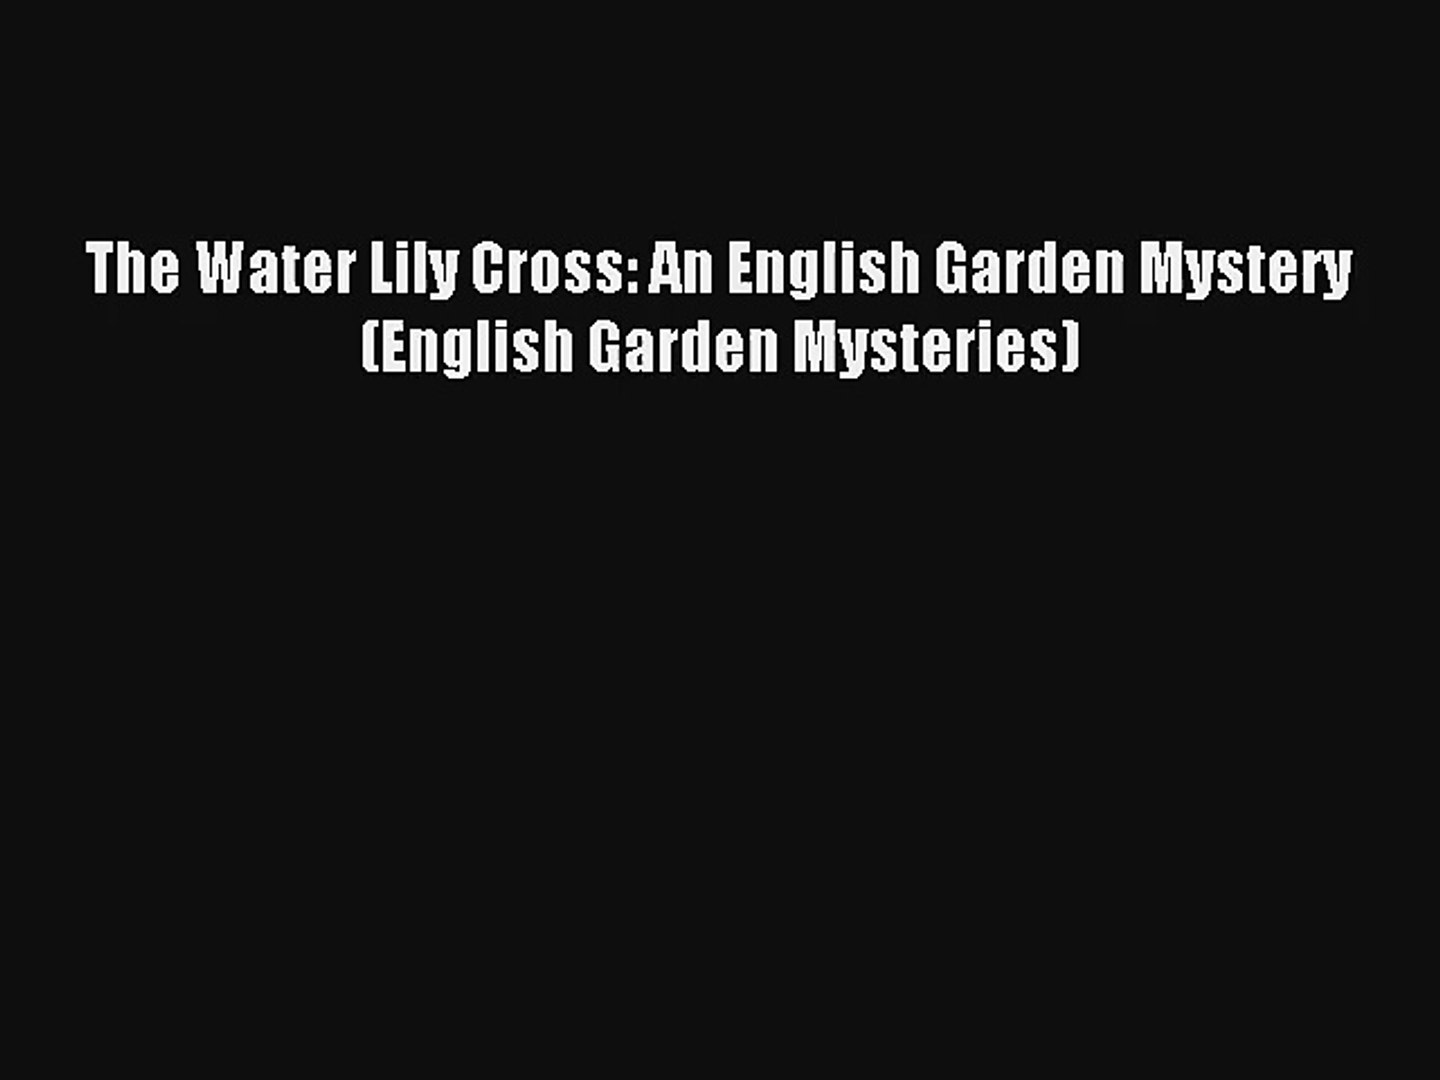 The Water Lily Cross: An English Garden Mystery (English Garden Mysteries)# Online